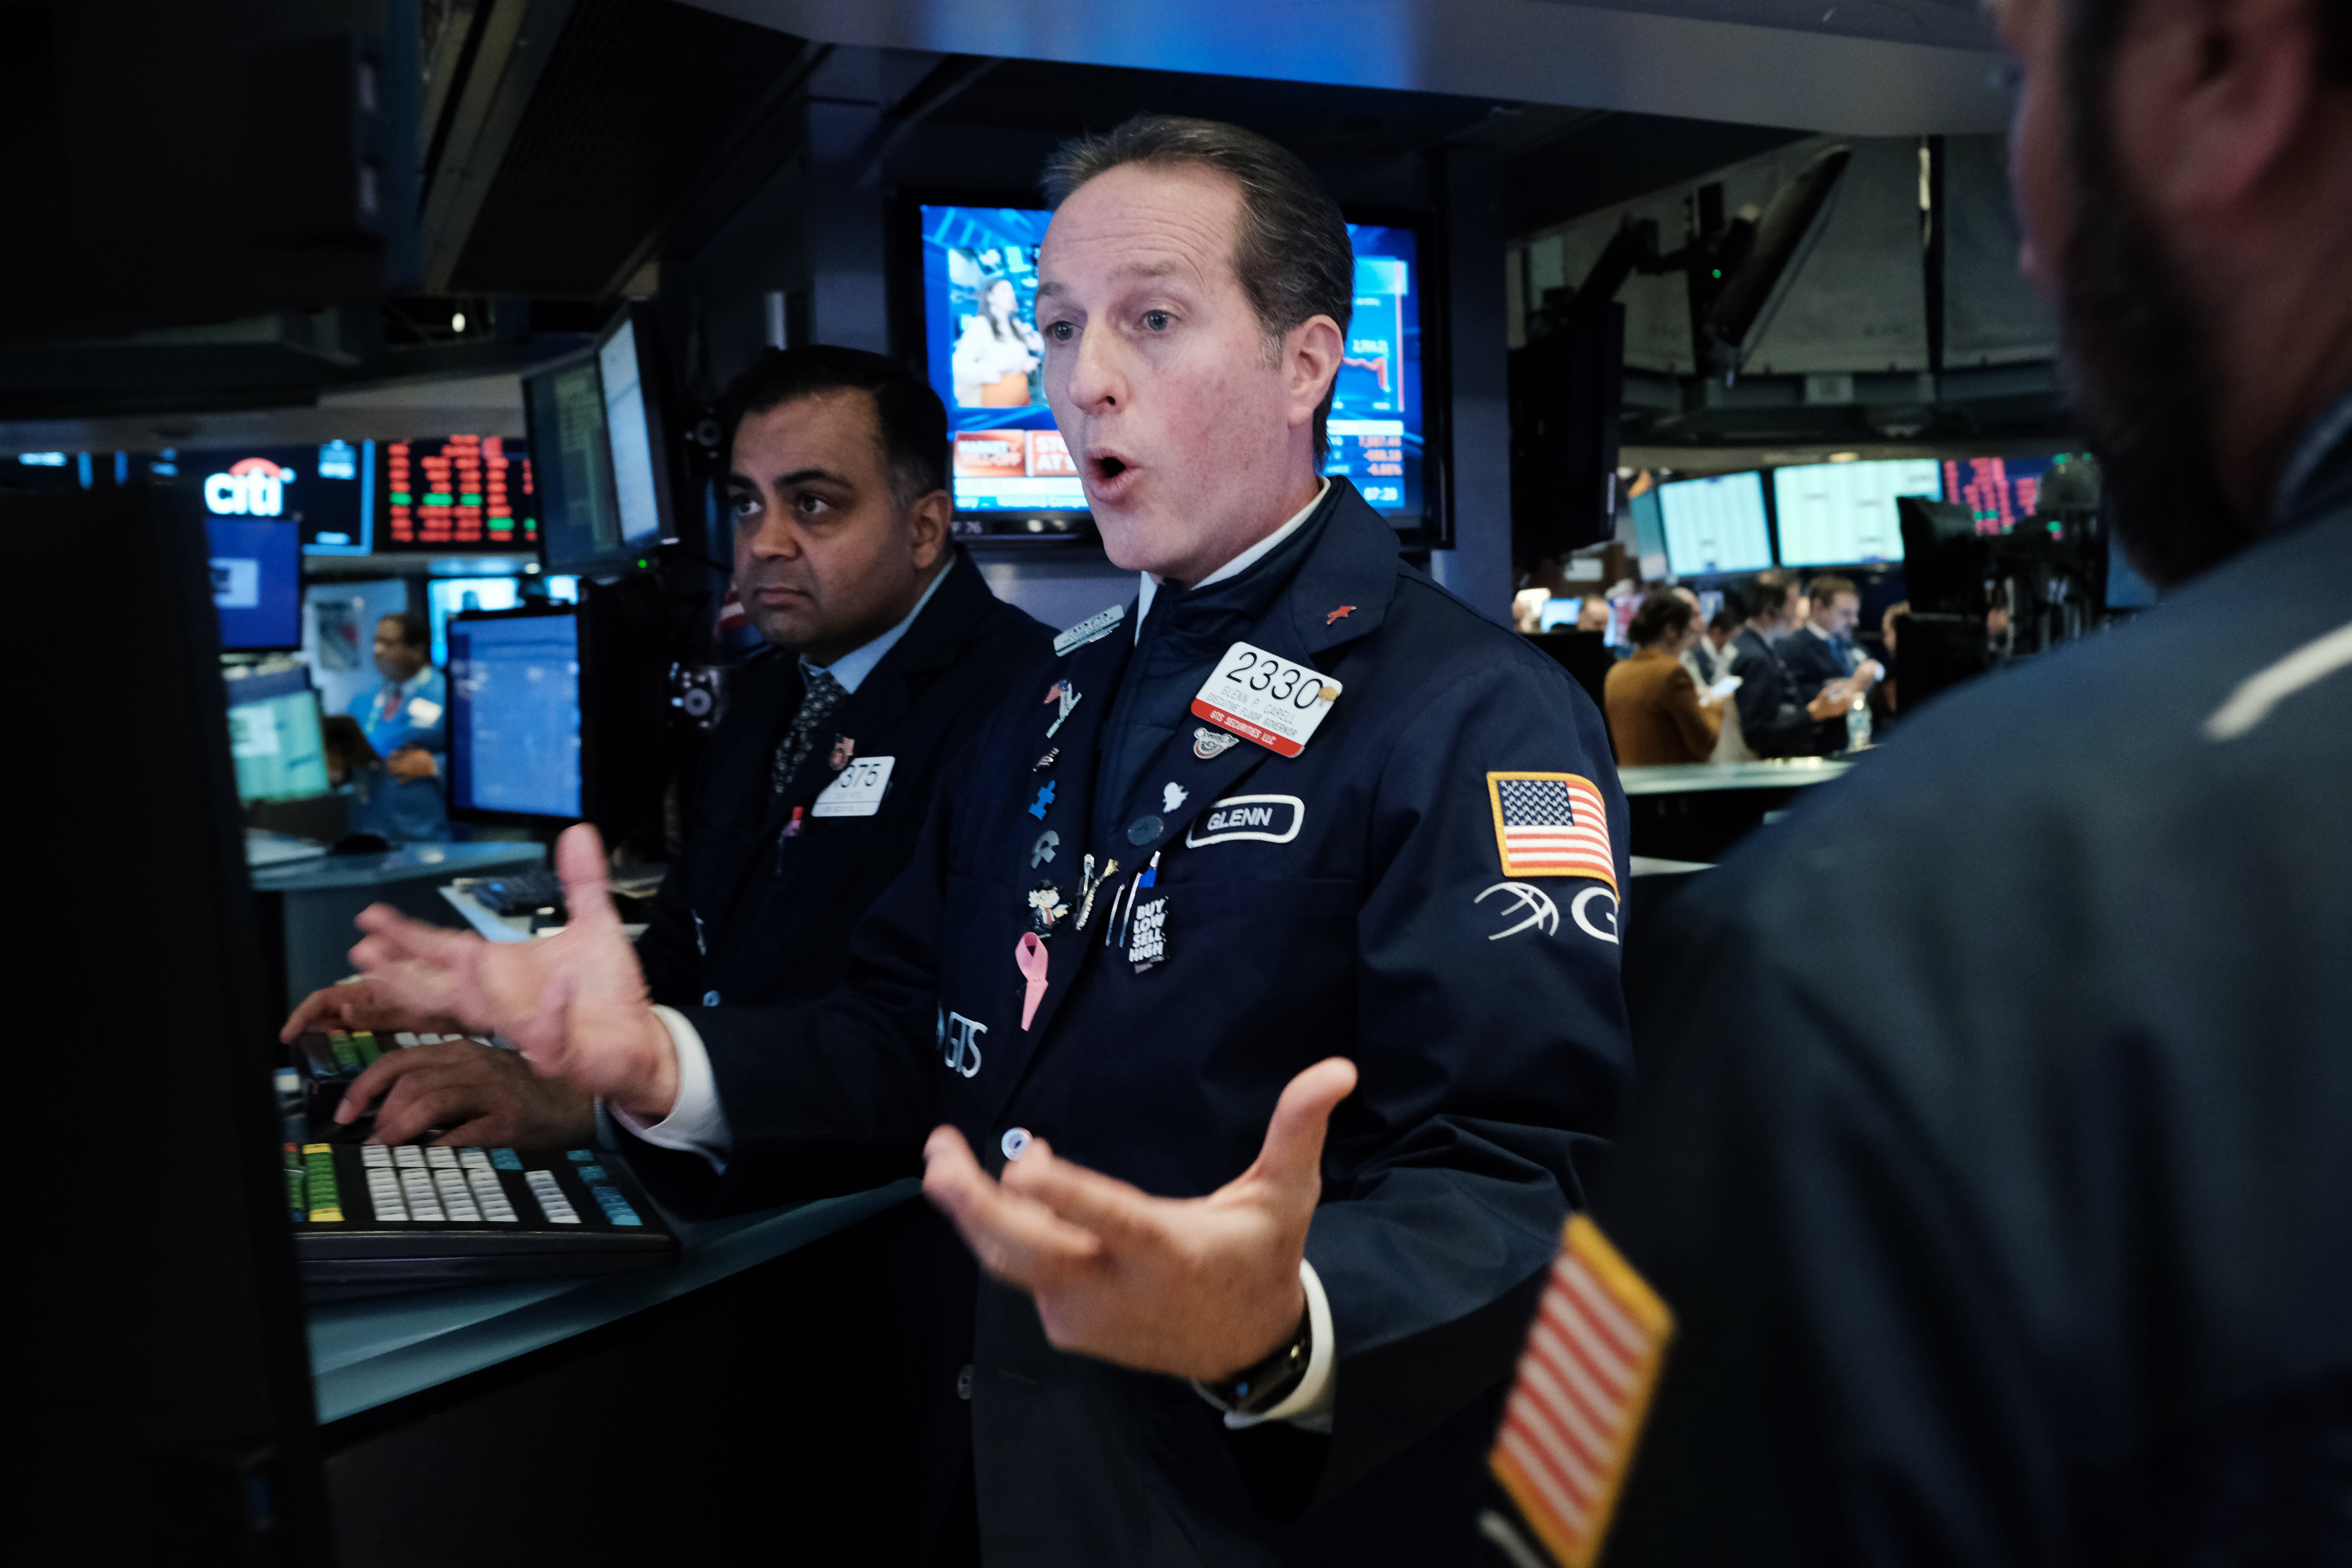 Stock market live updates: Sell-off deepens, trading halted, S&P 500 heads for bear market